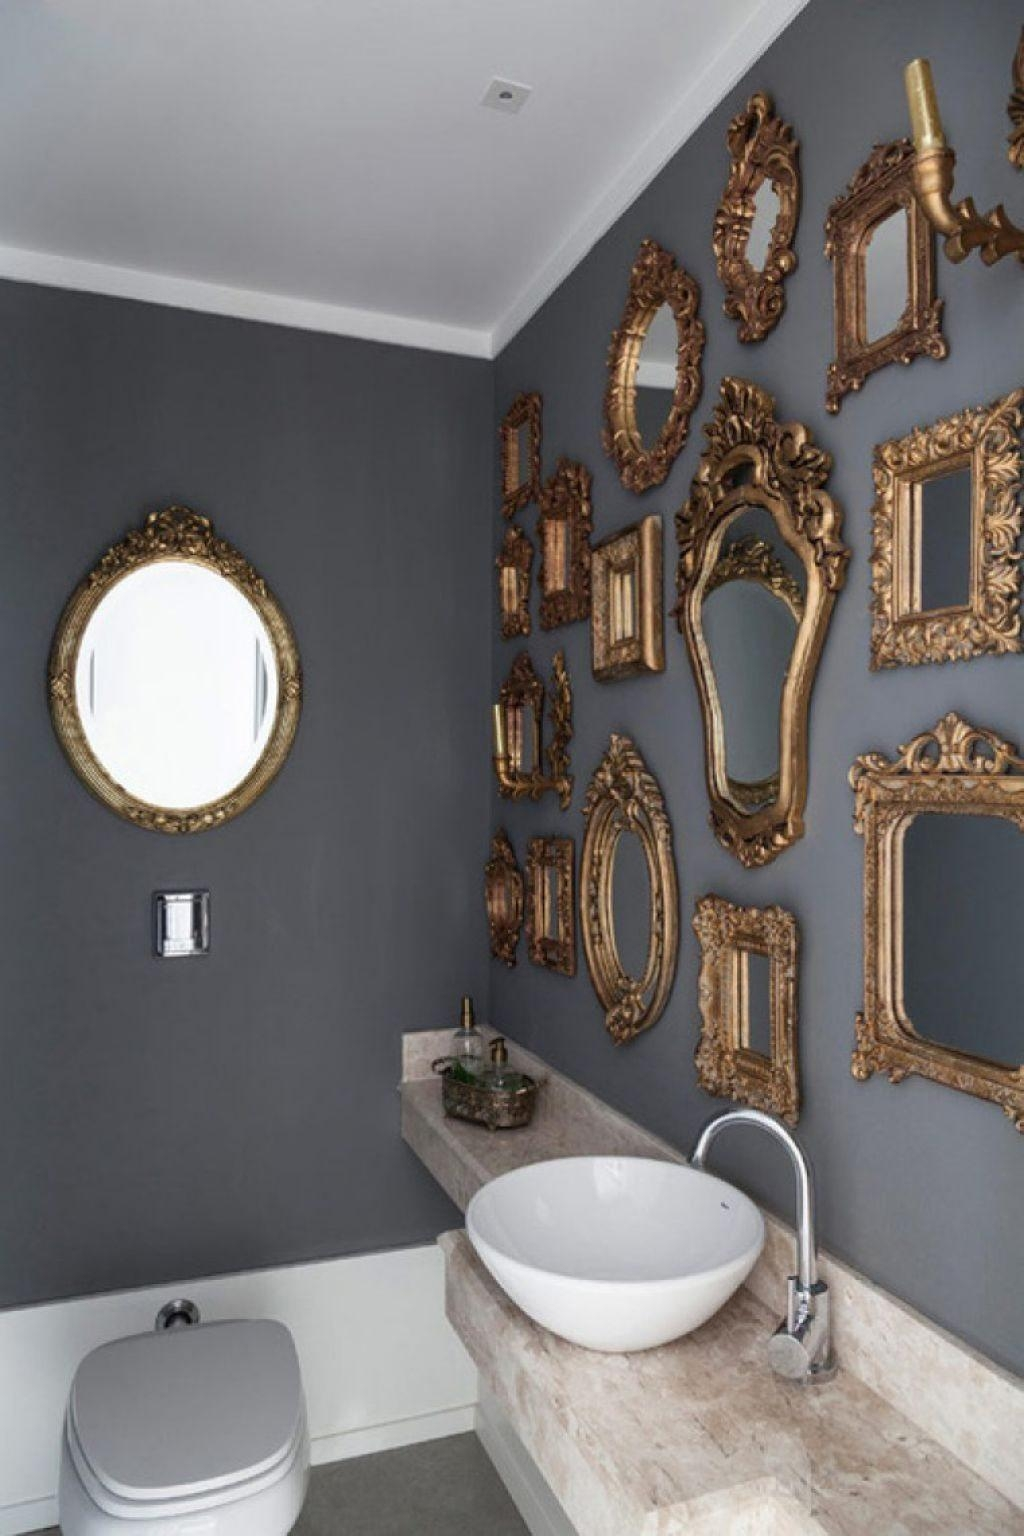 Ornate Mirrors Placed In The Bathroom With Grey Walls – Decorative For Ornate Bathroom Mirrors (Image 18 of 20)